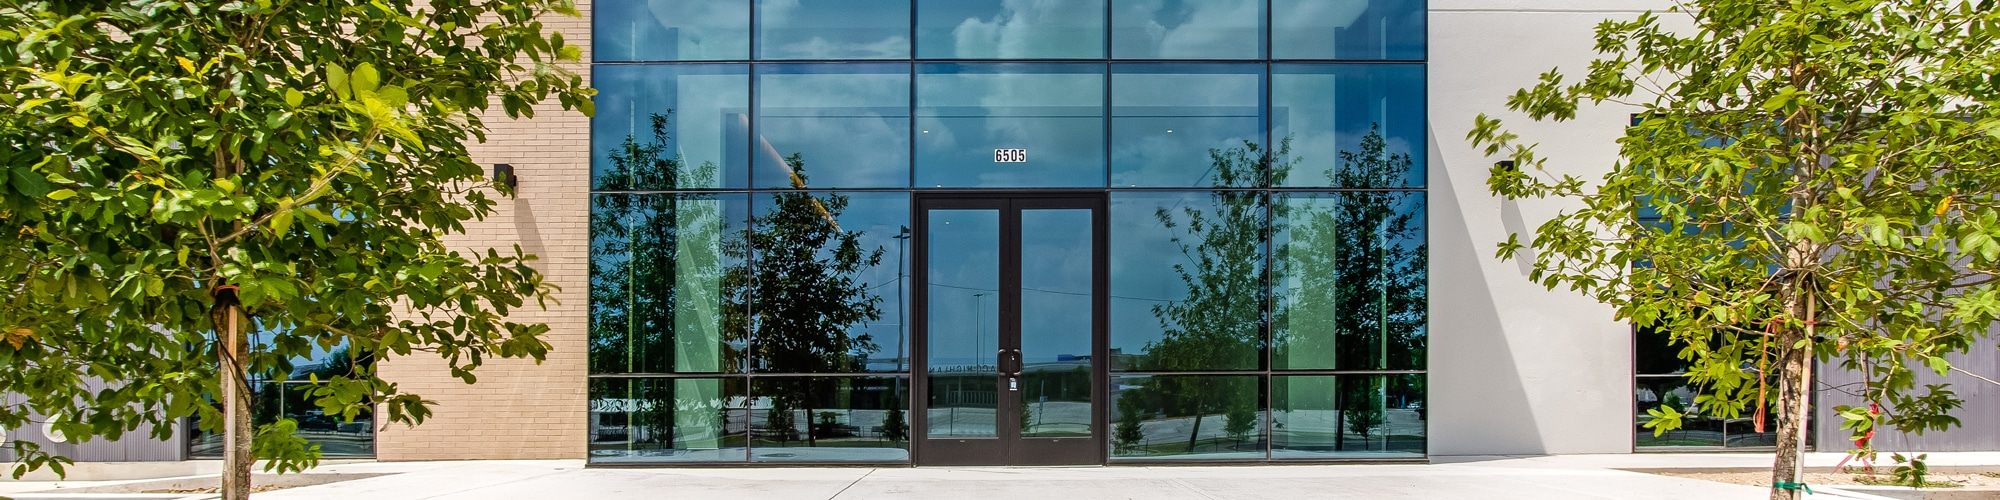 Highland-Tech-Center-May-2020-Exterior-1